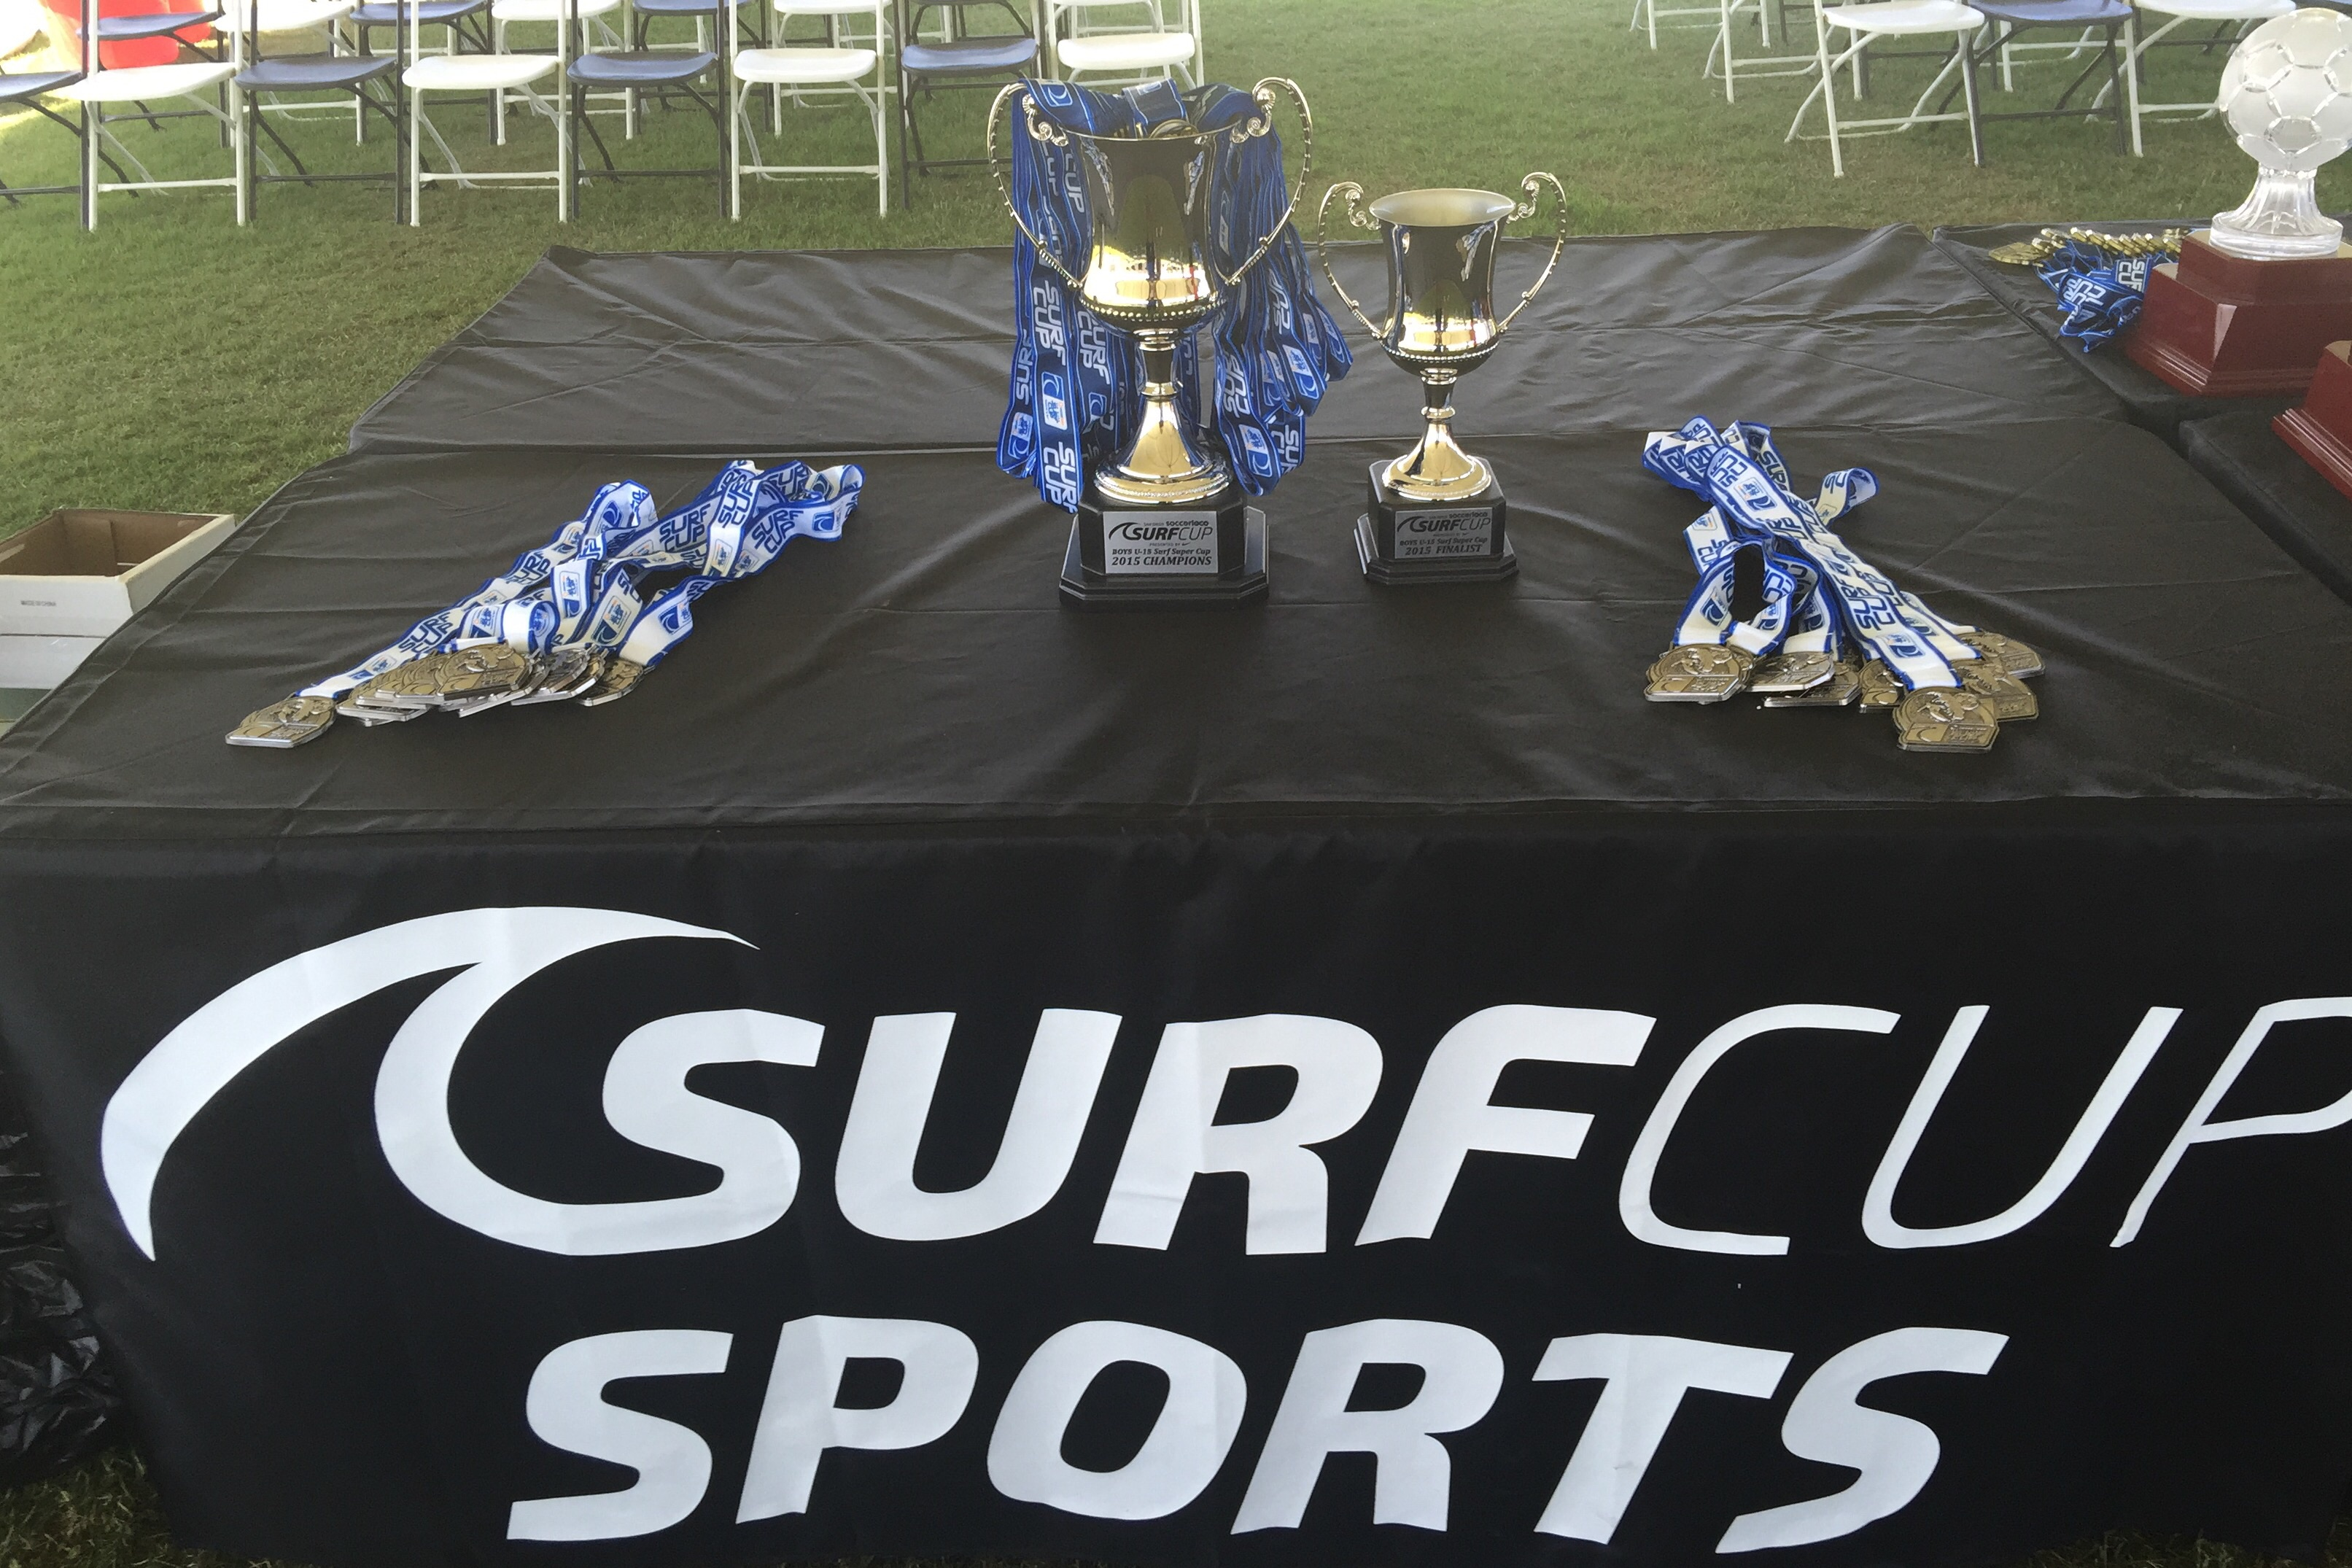 The highest level of soccer played at the men's u18 soccerloco Surf Cup